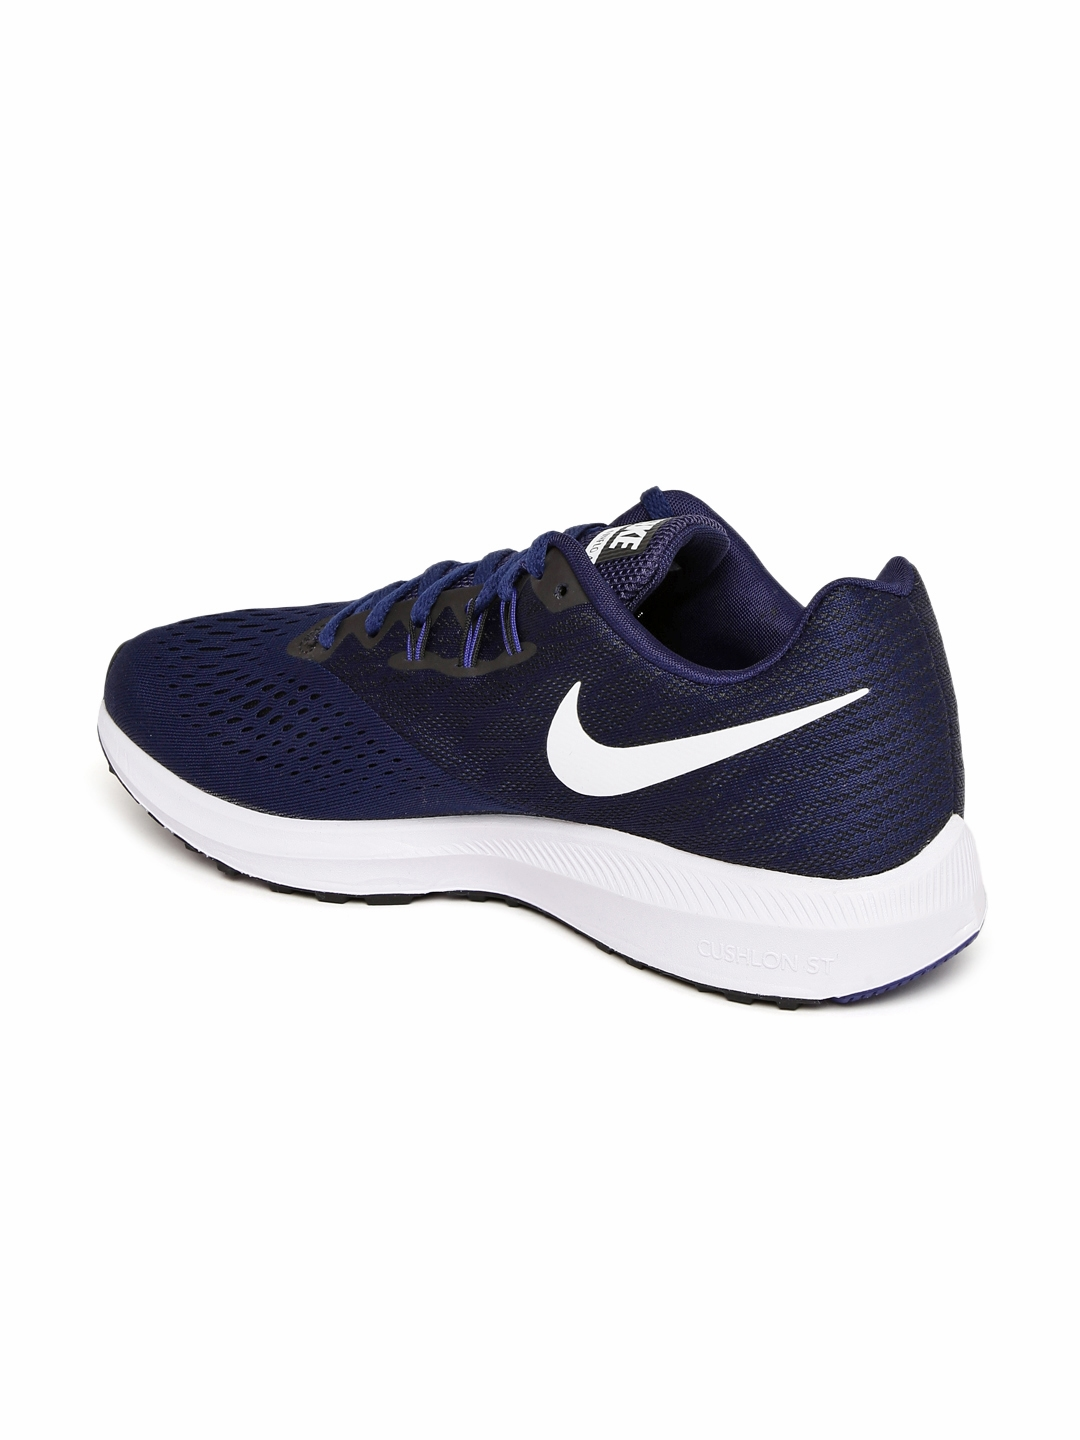 79d9dcaec604a Buy Nike Men Navy Blue ZOOM WINFLO 4 Running Shoes - Sports Shoes ...